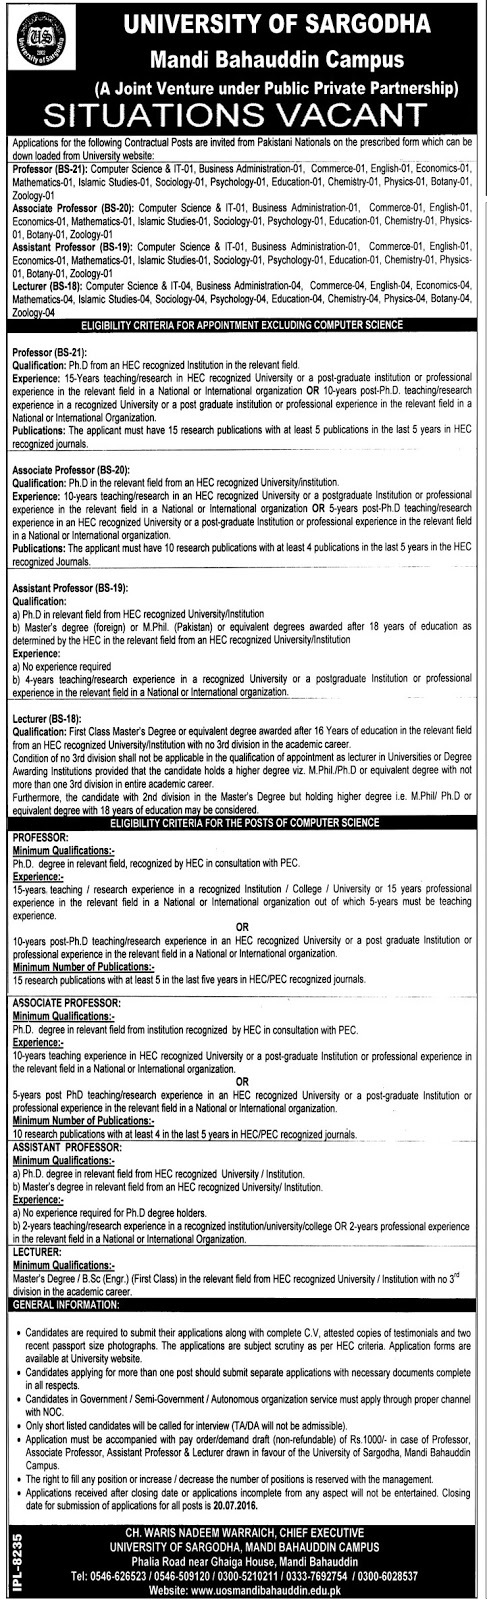 Teachers Jobs in UOS 2016 Mandi Bahauddin Campus